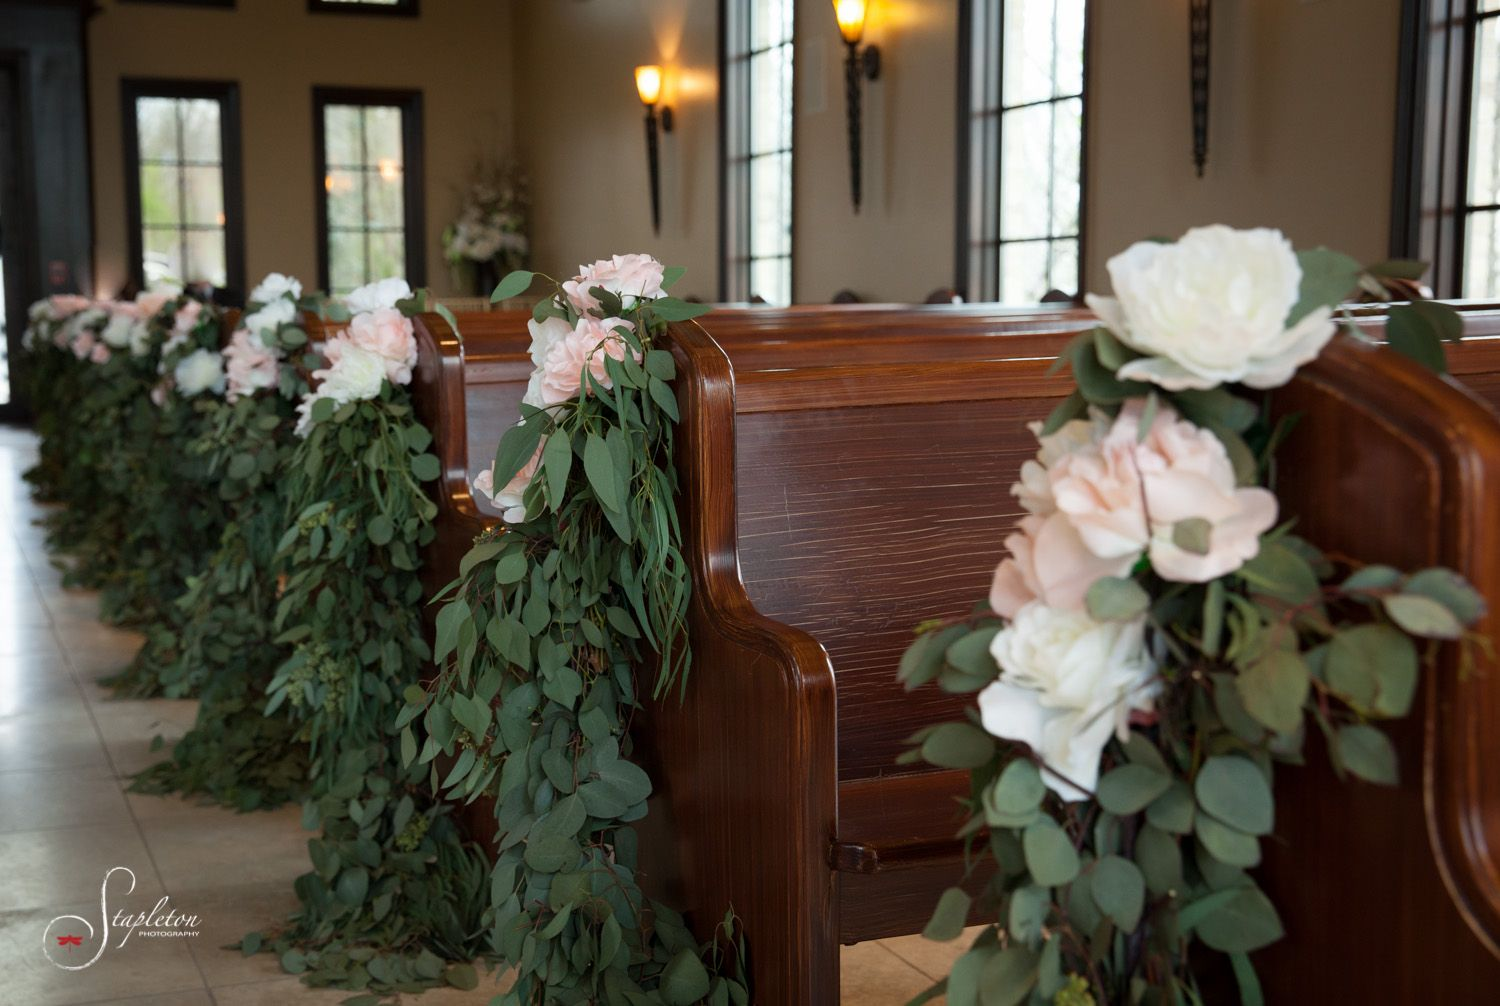 Stunning Pew Decorations Of Eucalyptus And Roses By The French